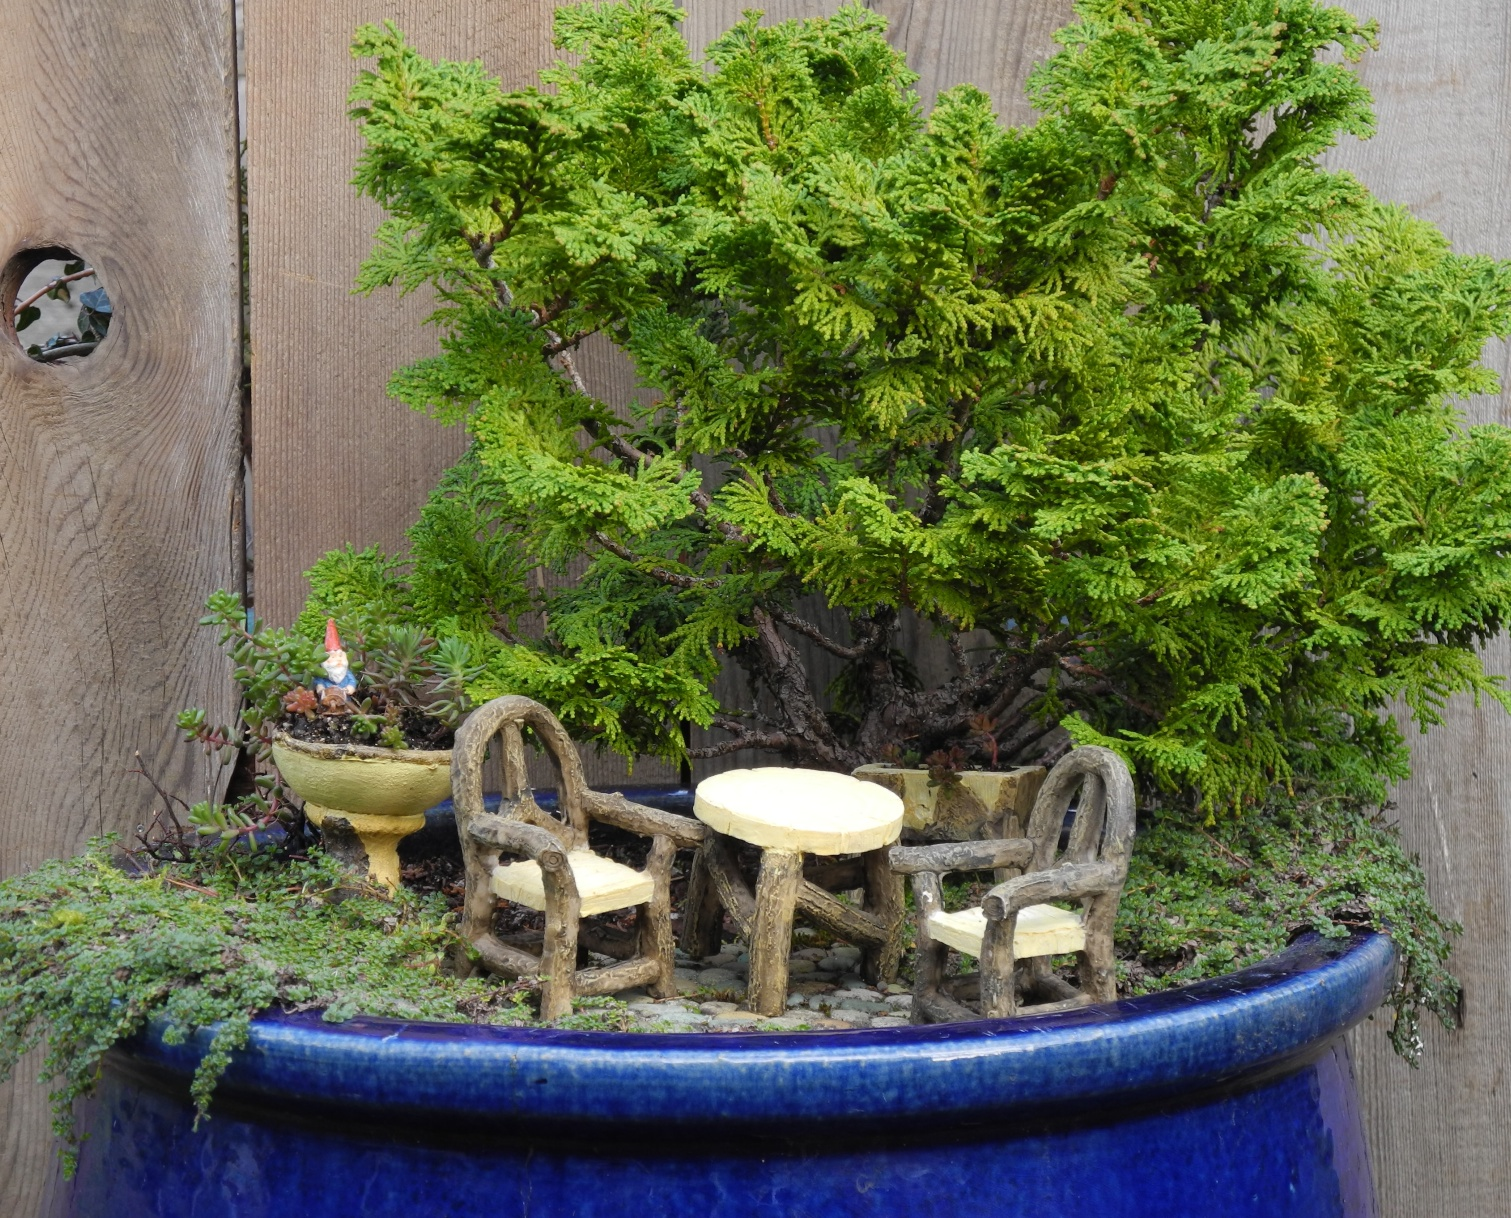 shrub inside a large, dark blue planting pot, containing small green plants, tiny table and two chairs, painted to look like wood, succulent fairy garden, little dish with succulents and a gnome figurine